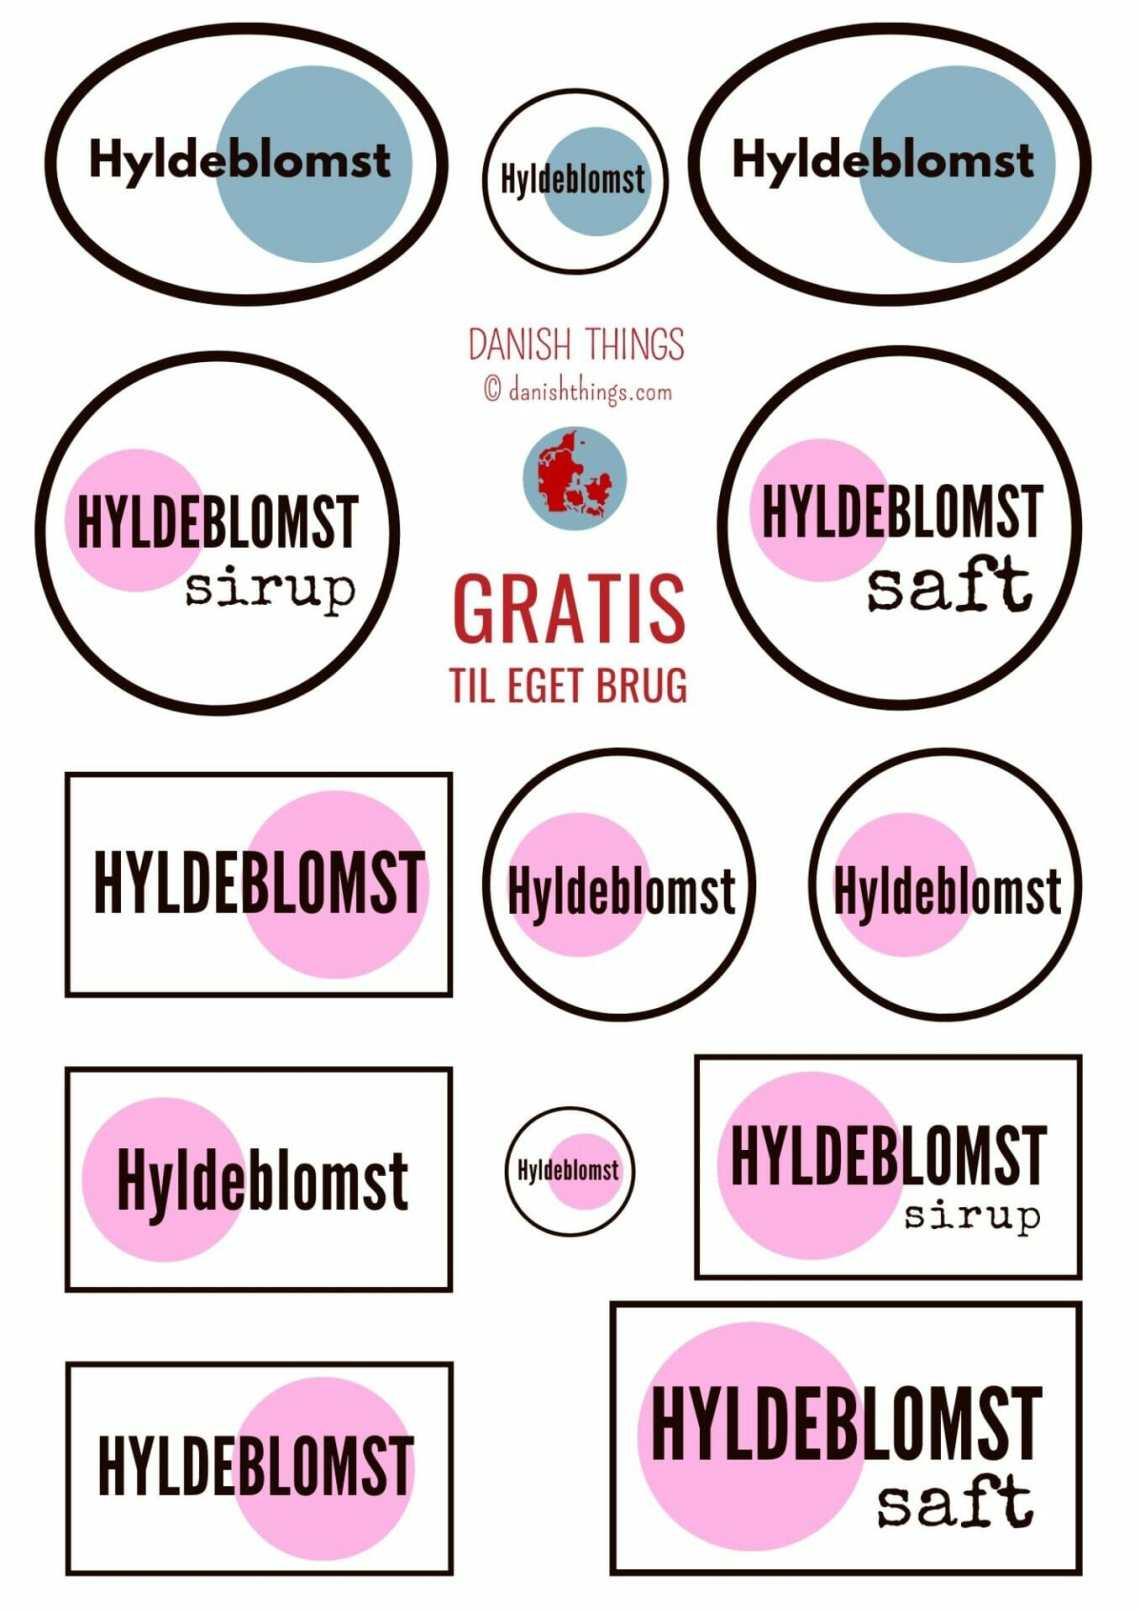 Labels og etiketter til hyldeblomstsaft eller hyldeblomstsirup. Find opskrifter, gratis download, print og inspiration til årets gang på danishthings.com #DanishThings #hyldeblomstsaft #hyldeblomstsirup #hyldeblomst #sirup